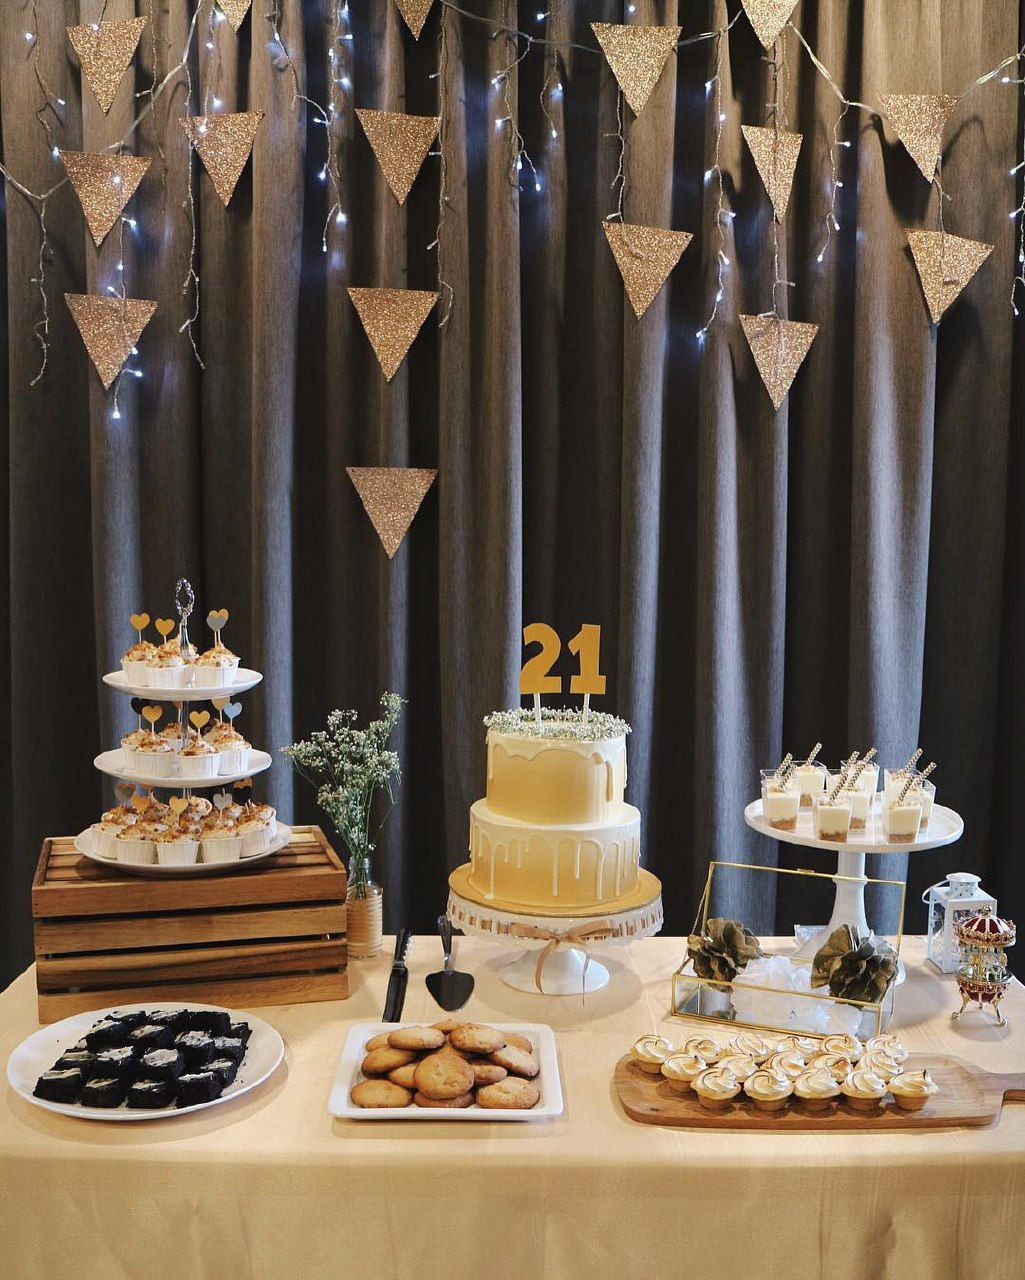 dessert table with cake